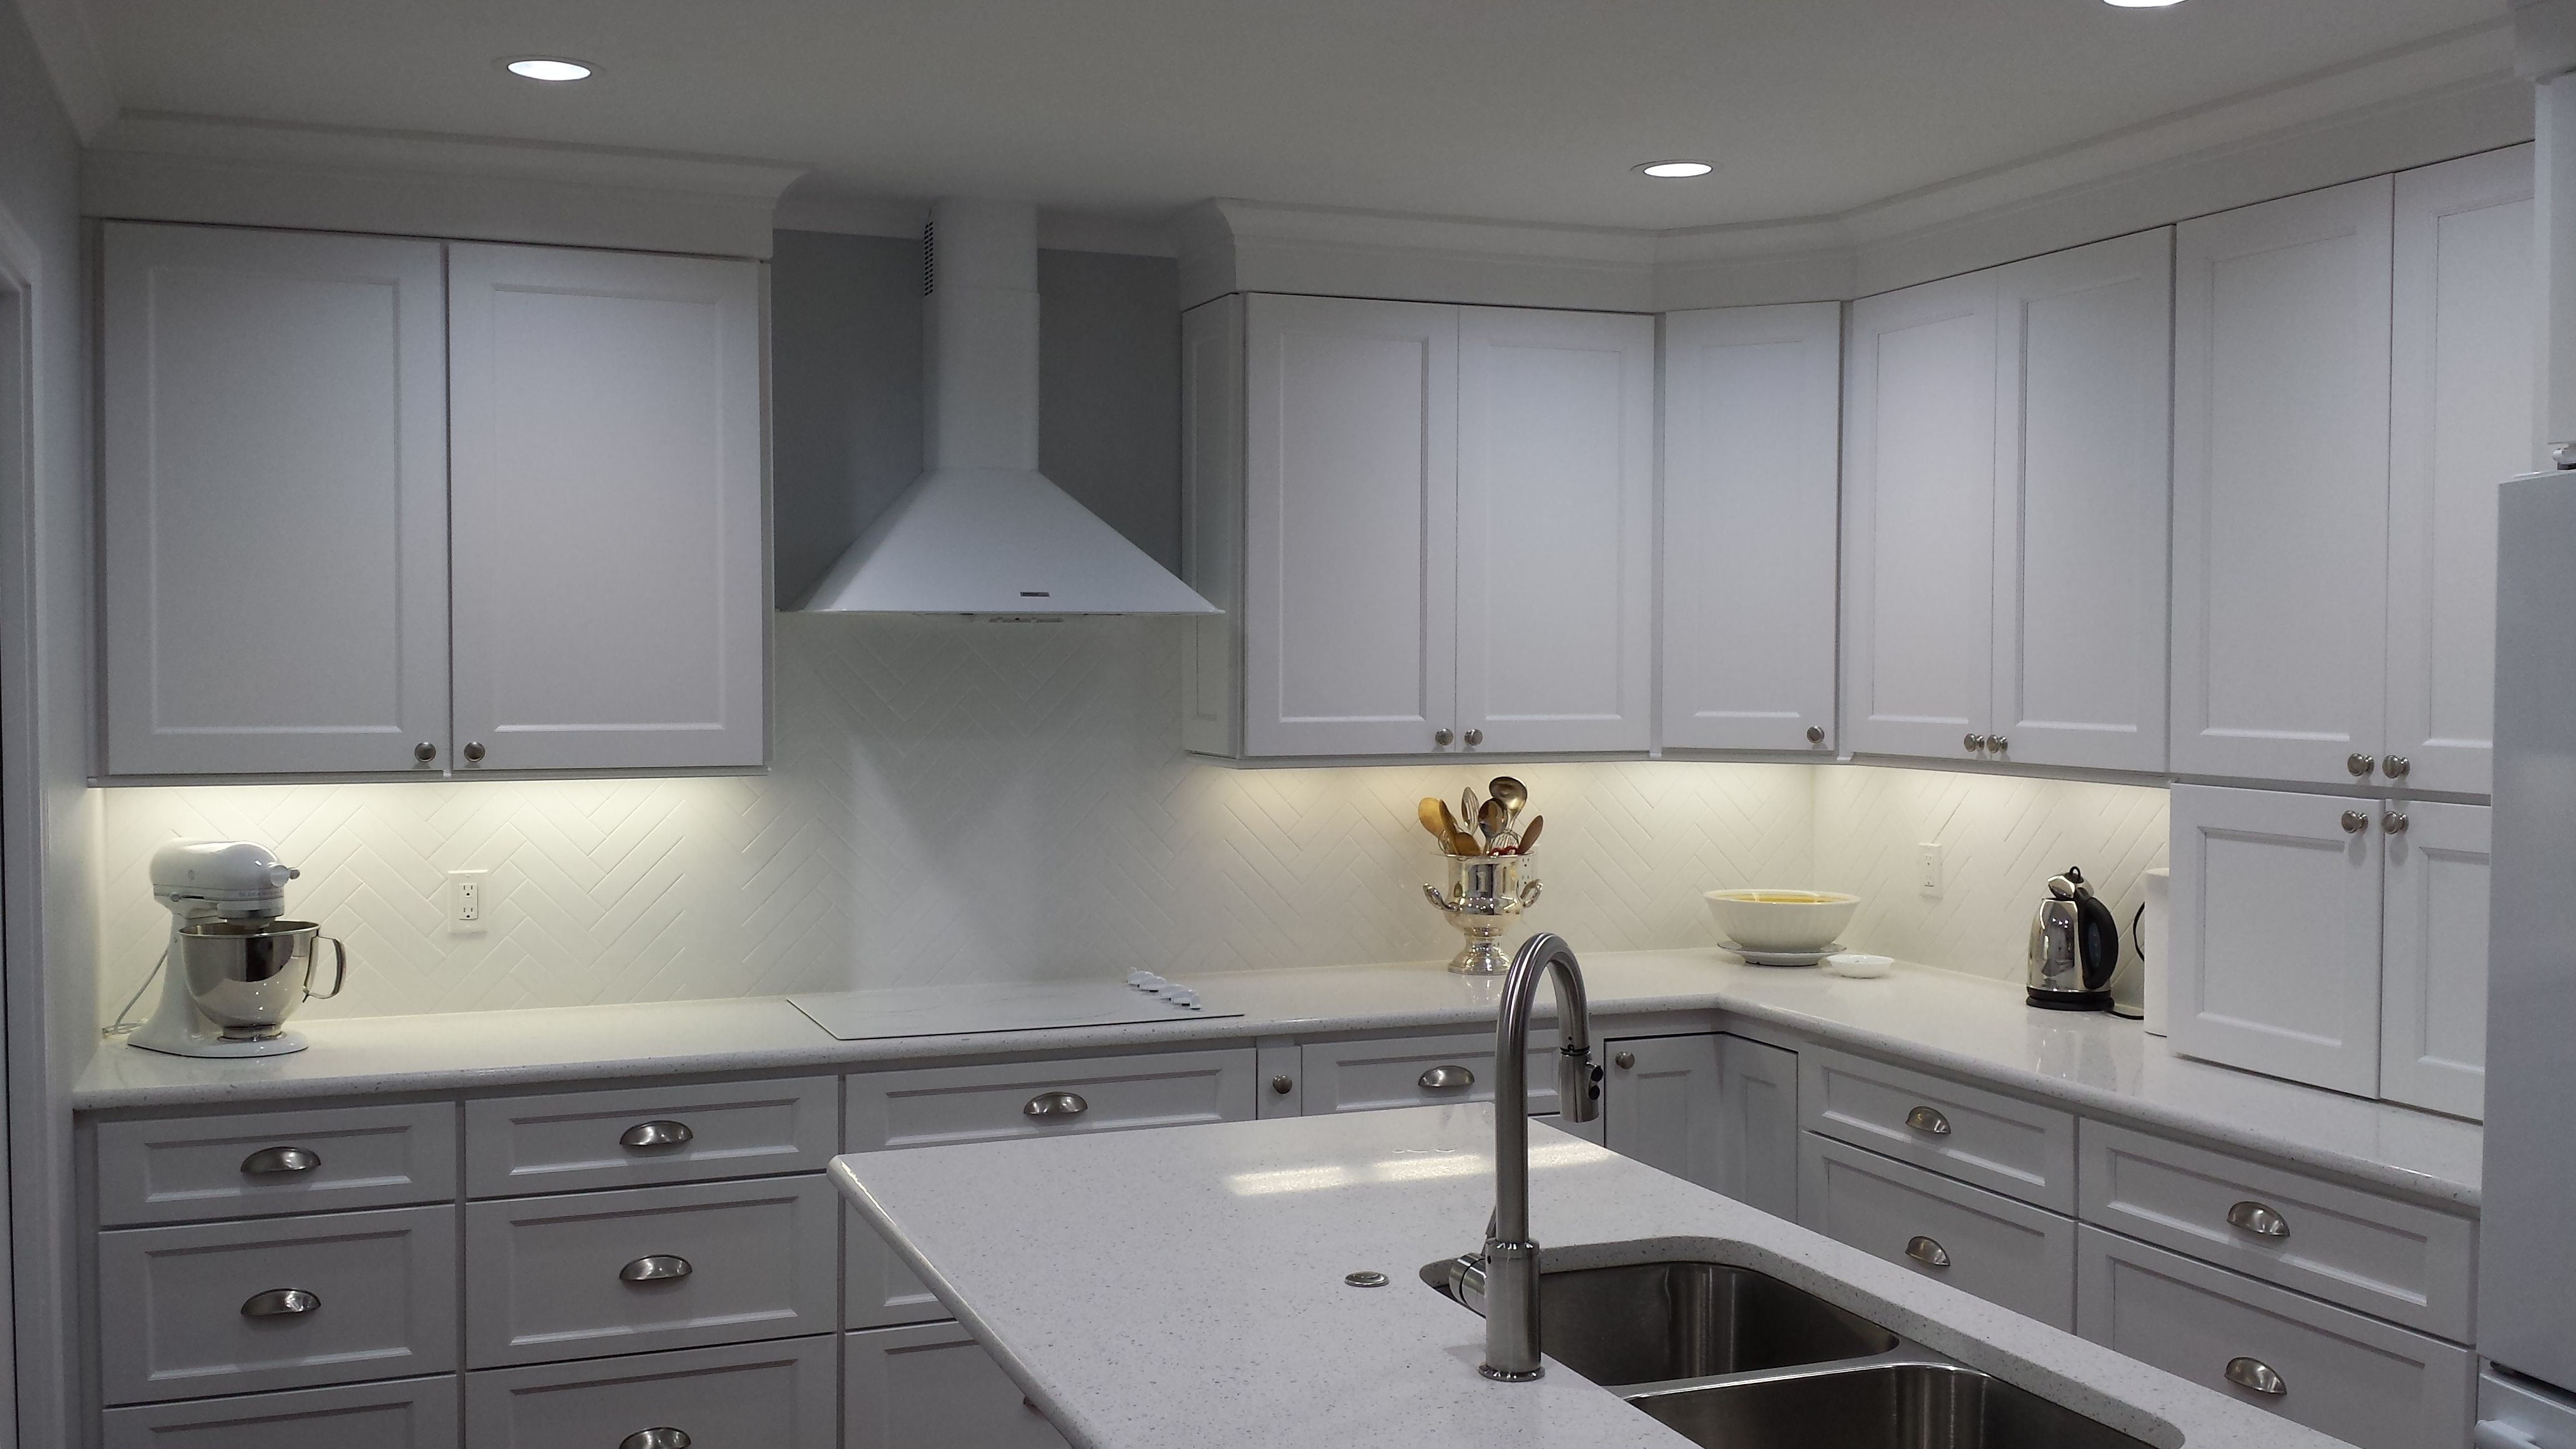 Kitchen Design Concepts Of Dallas Texas Created A Modern Monochromatic Kitchen With Our White York C Kitchen Design Classic Kitchen Cabinets Kitchen Concepts